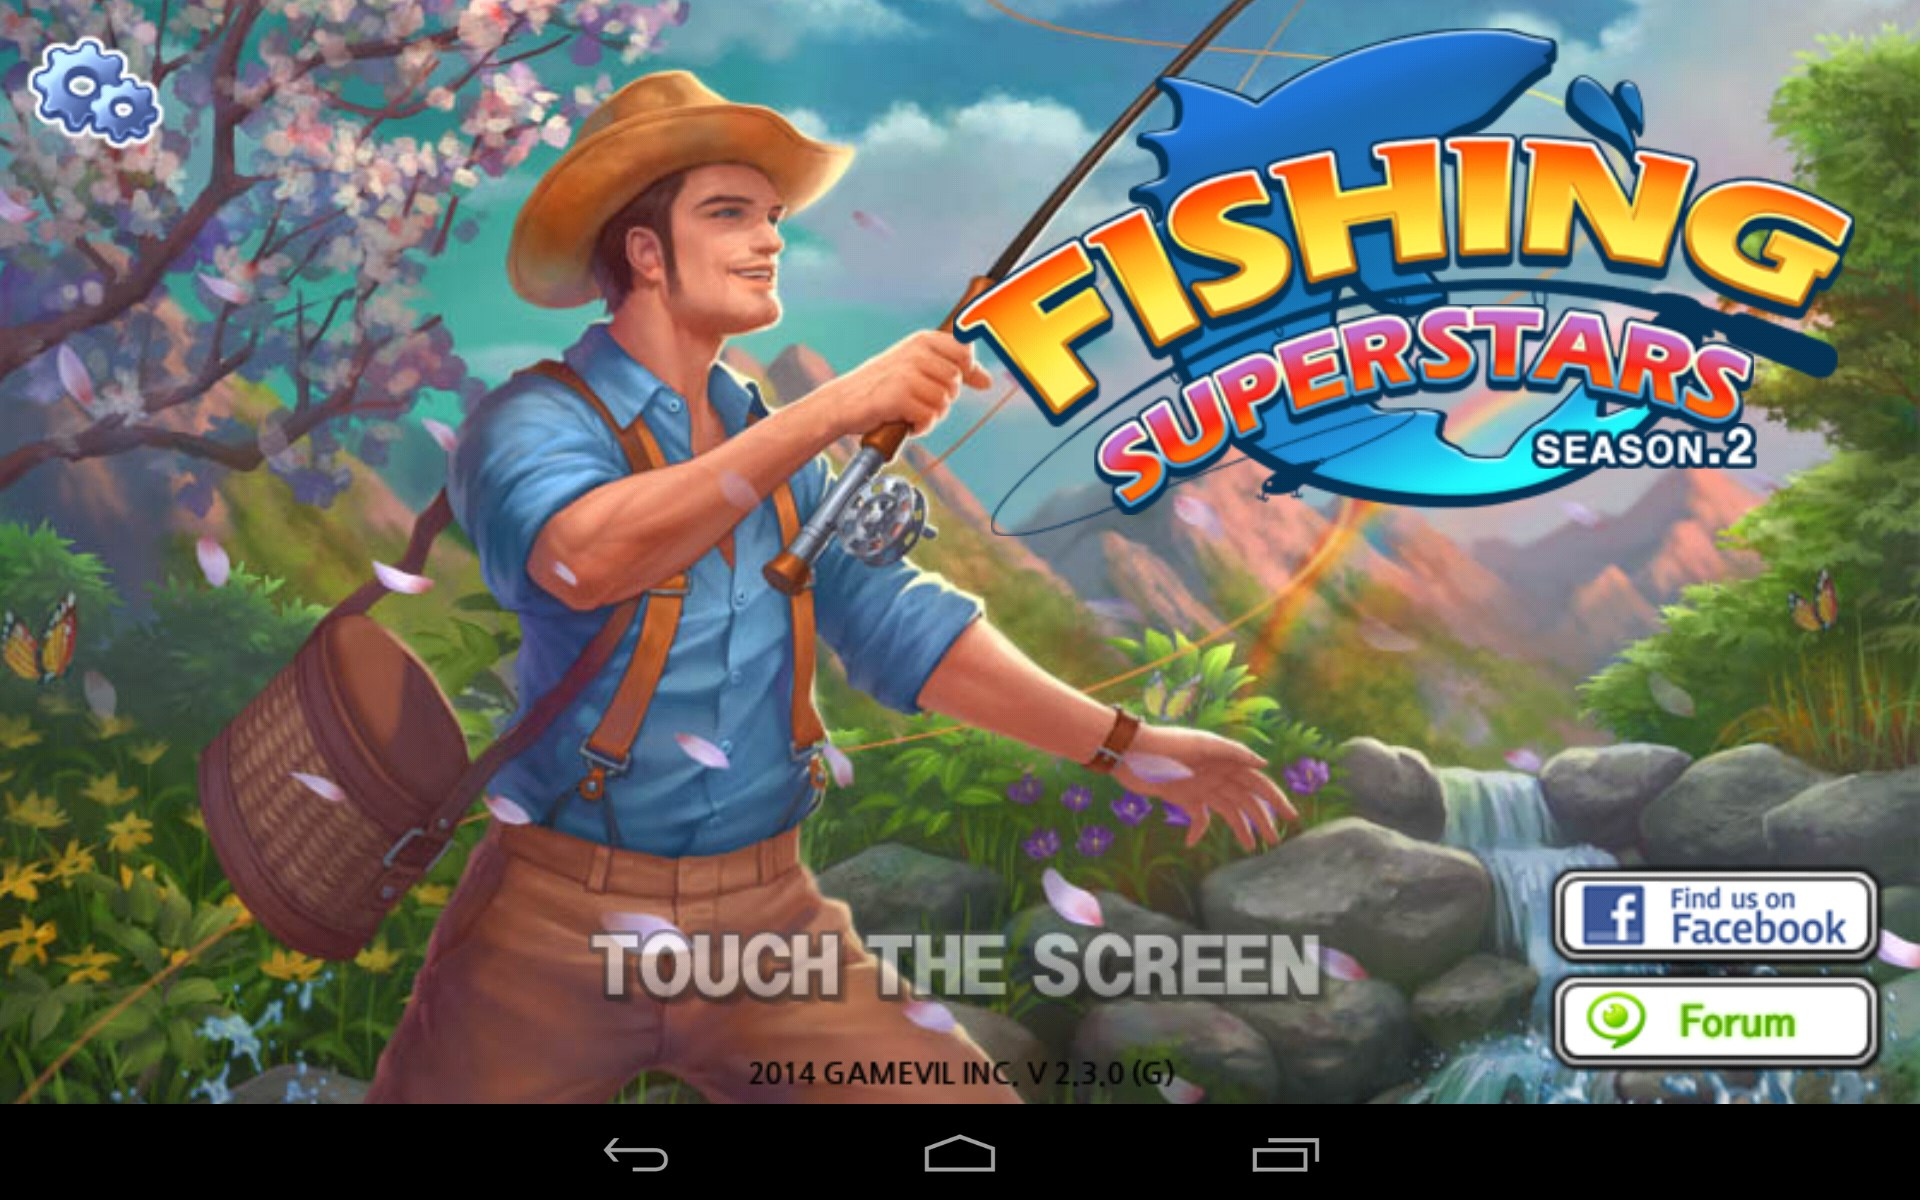 Fishing superstars games for android 2018 free for Fishing vr games